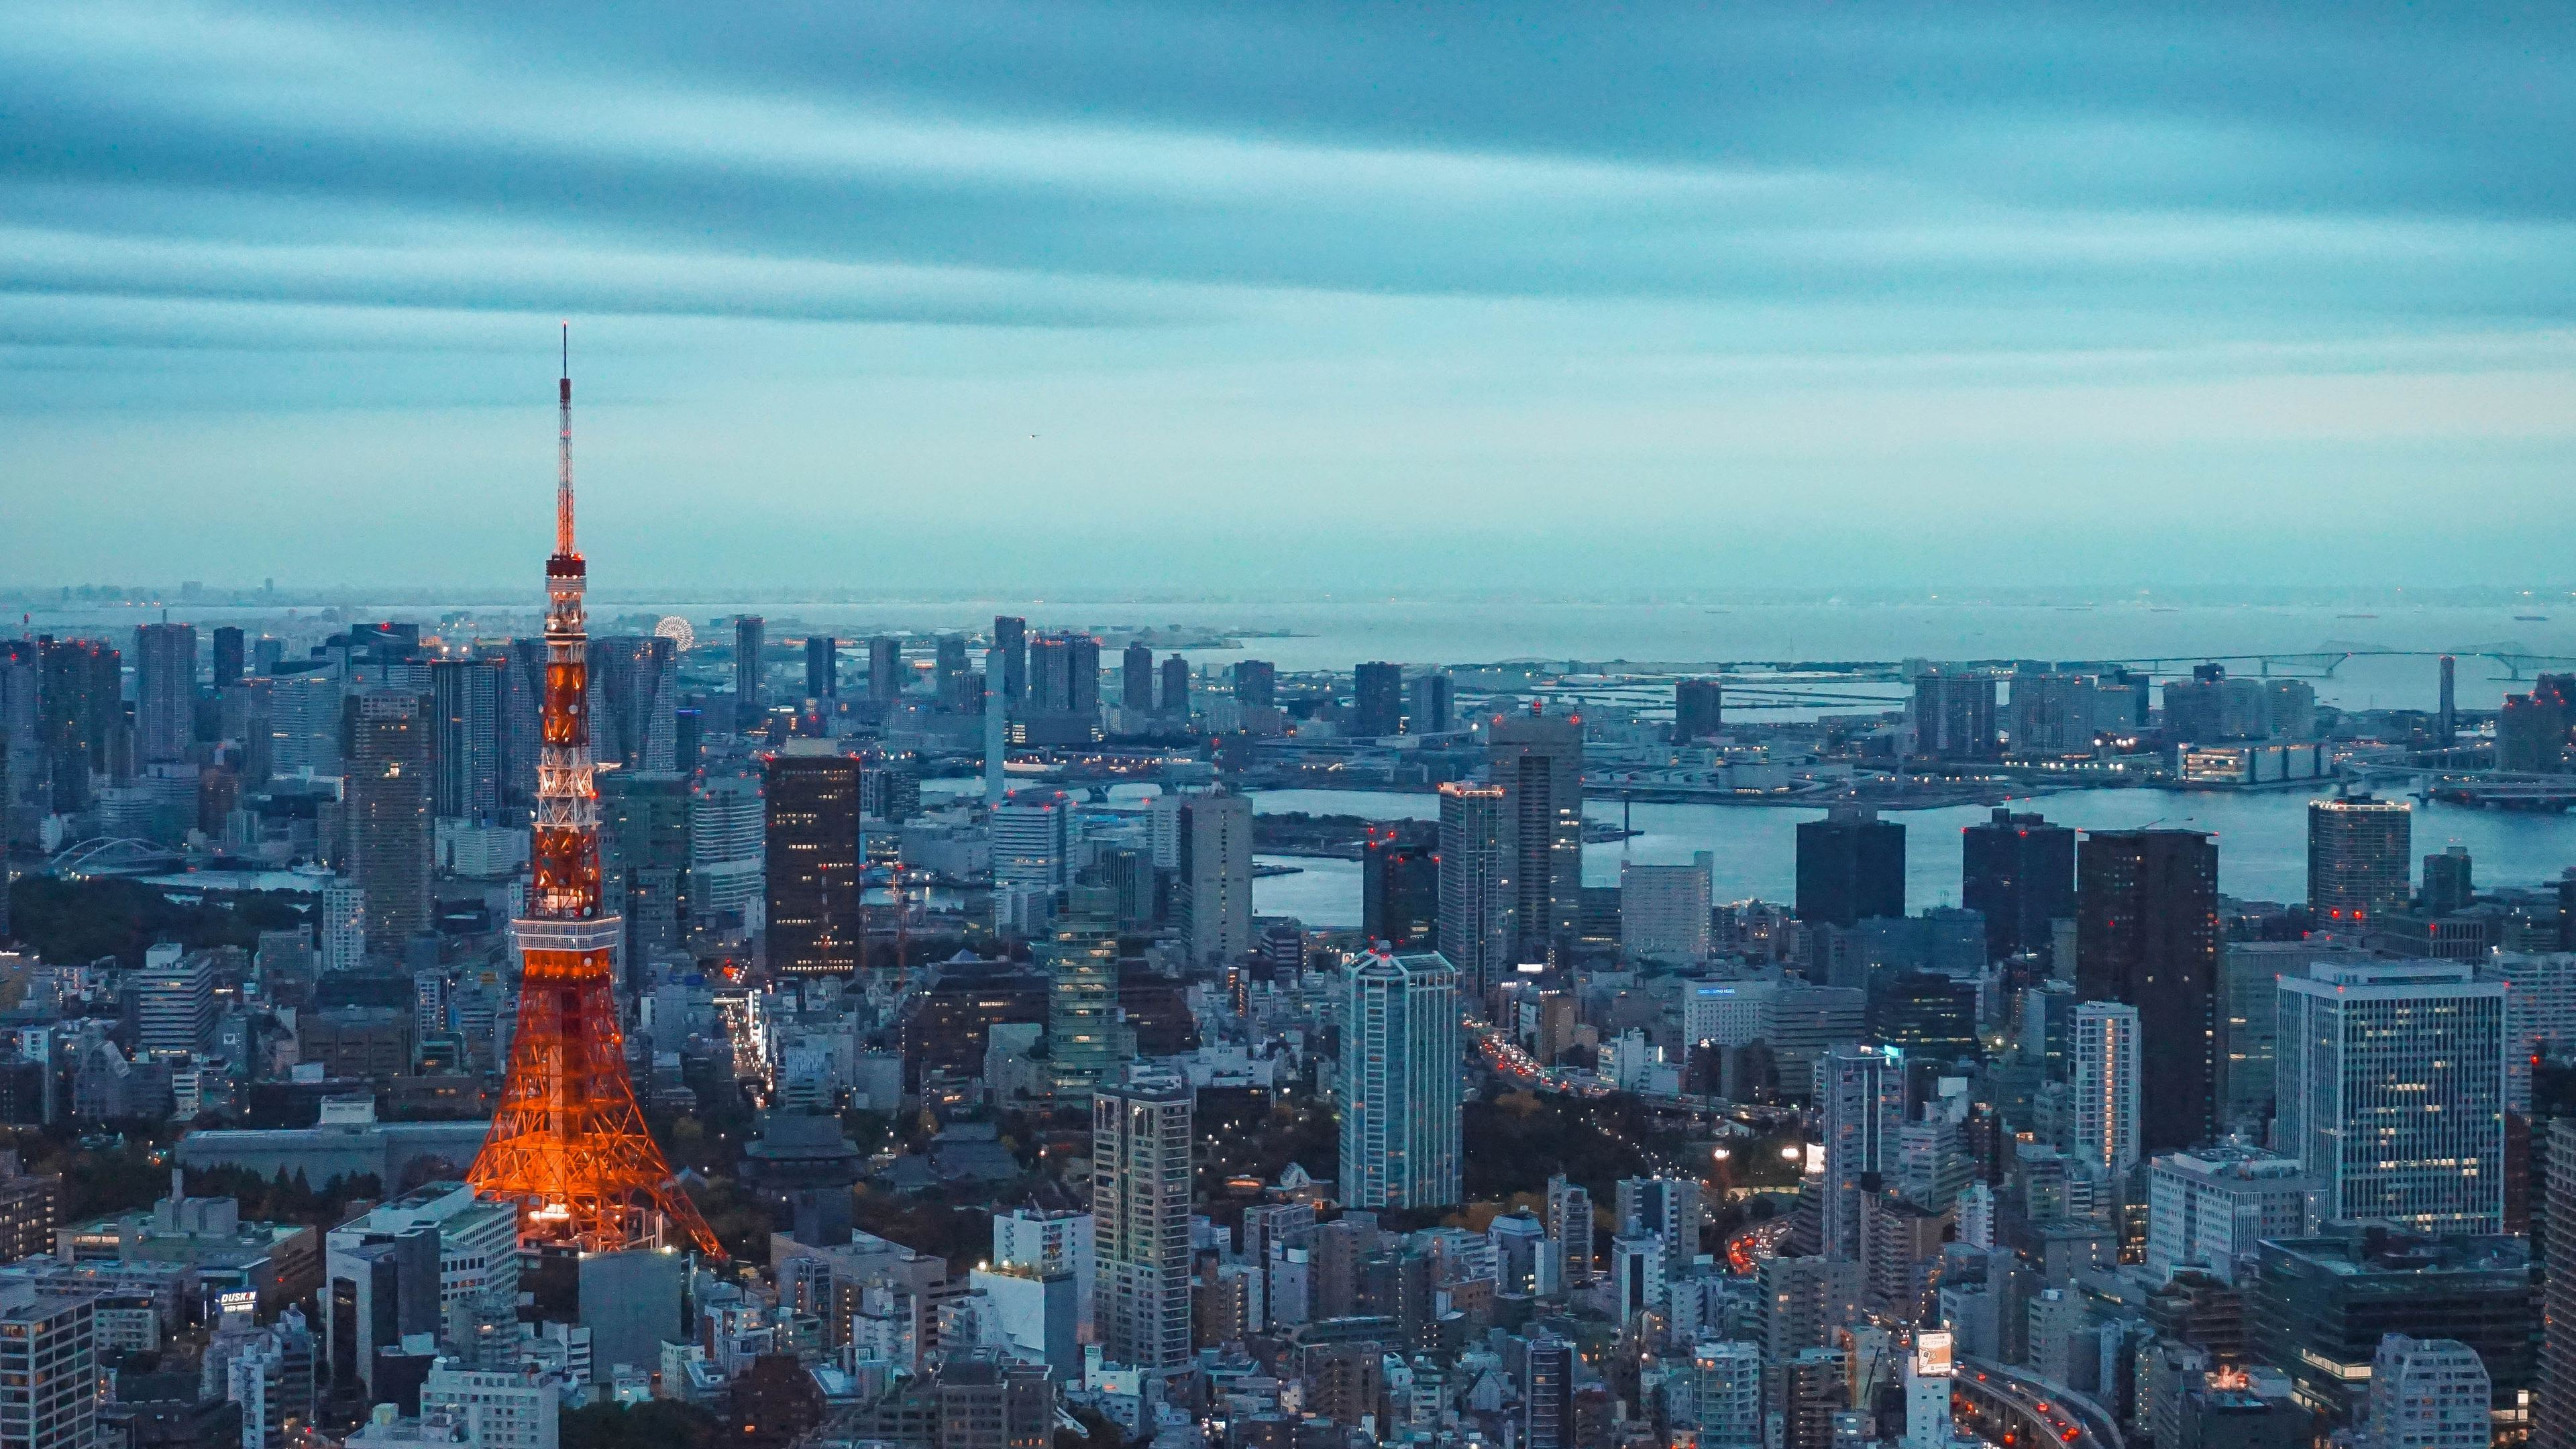 tokyo tower 1538072059 - Tokyo Tower - world wallpapers, tower wallpapers, tokyo wallpapers, tokyo tower wallpapers, skycrapper wallpapers, photography wallpapers, hd-wallpapers, buildings wallpapers, 5k wallpapers, 4k-wallpapers